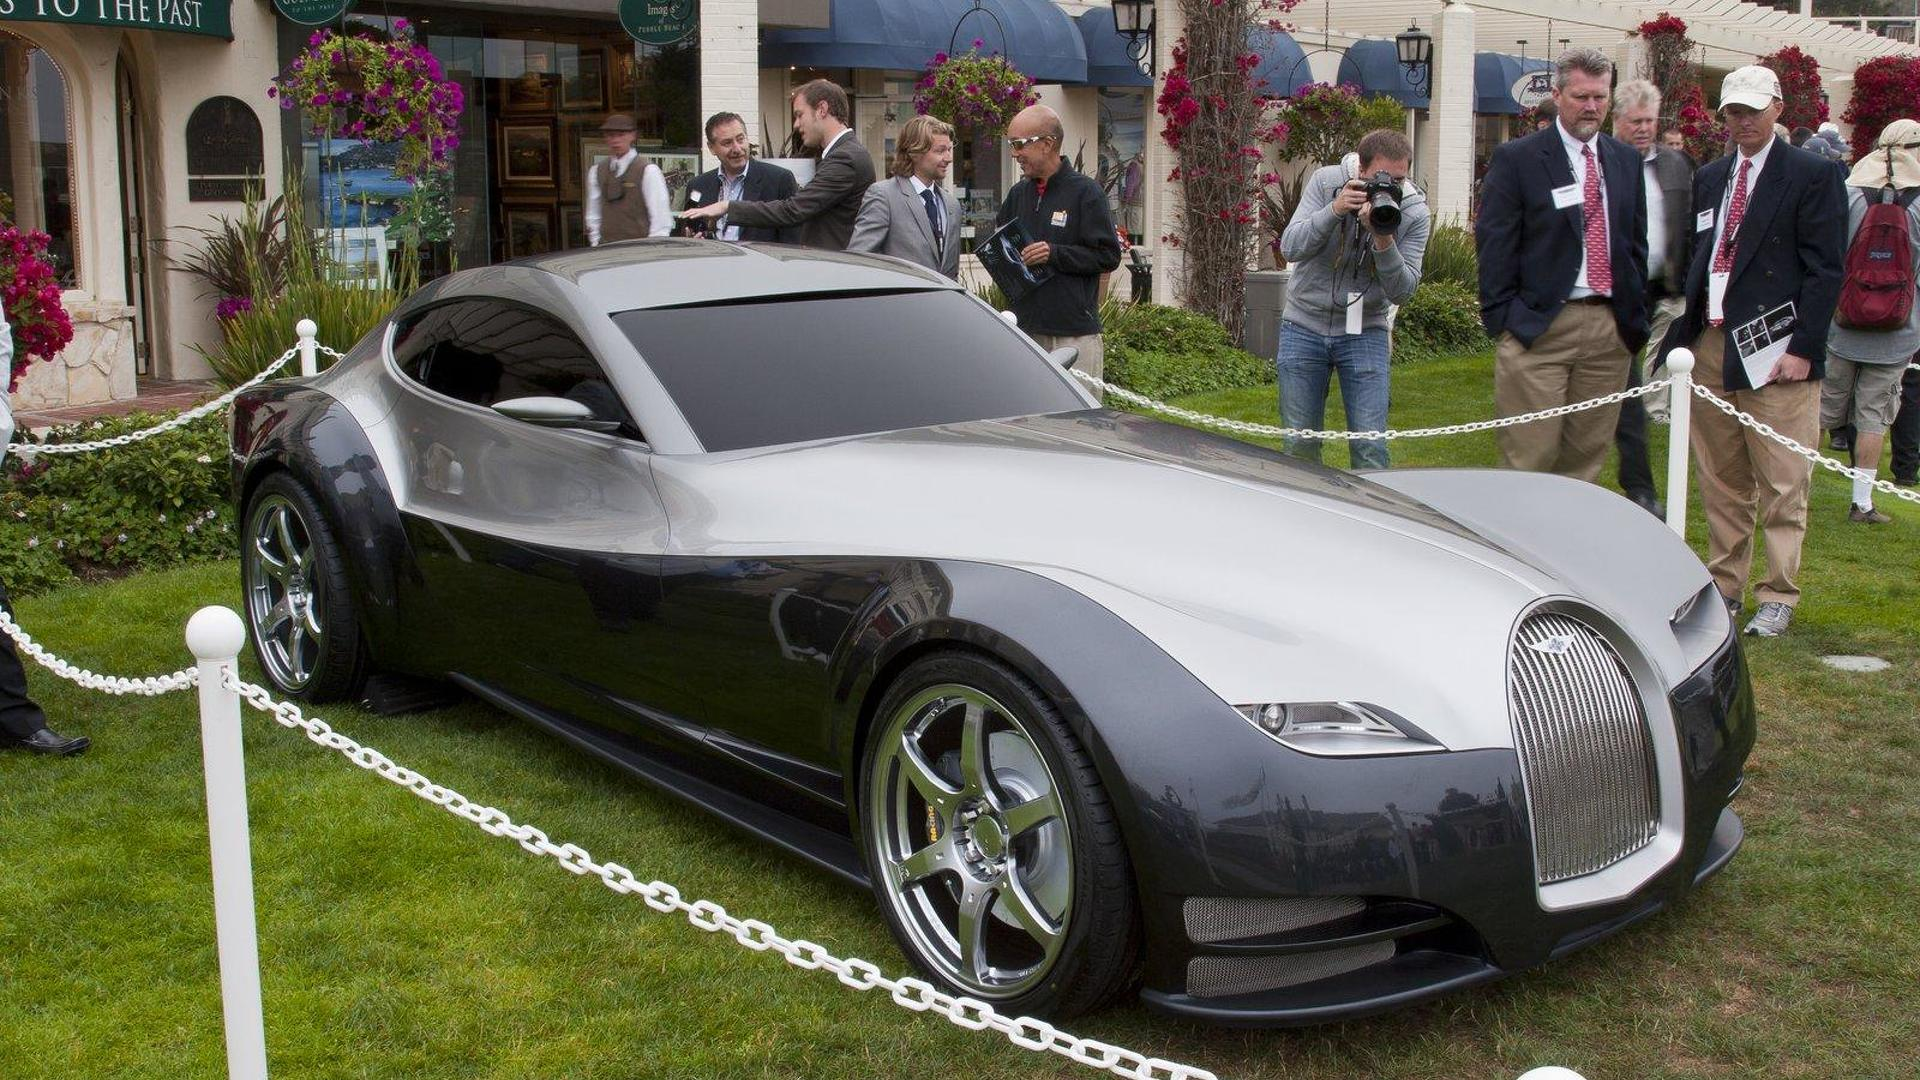 100 ideas morgan eva gt on habat morgan evagt delayed two years to develop magnesium technology vanachro Images